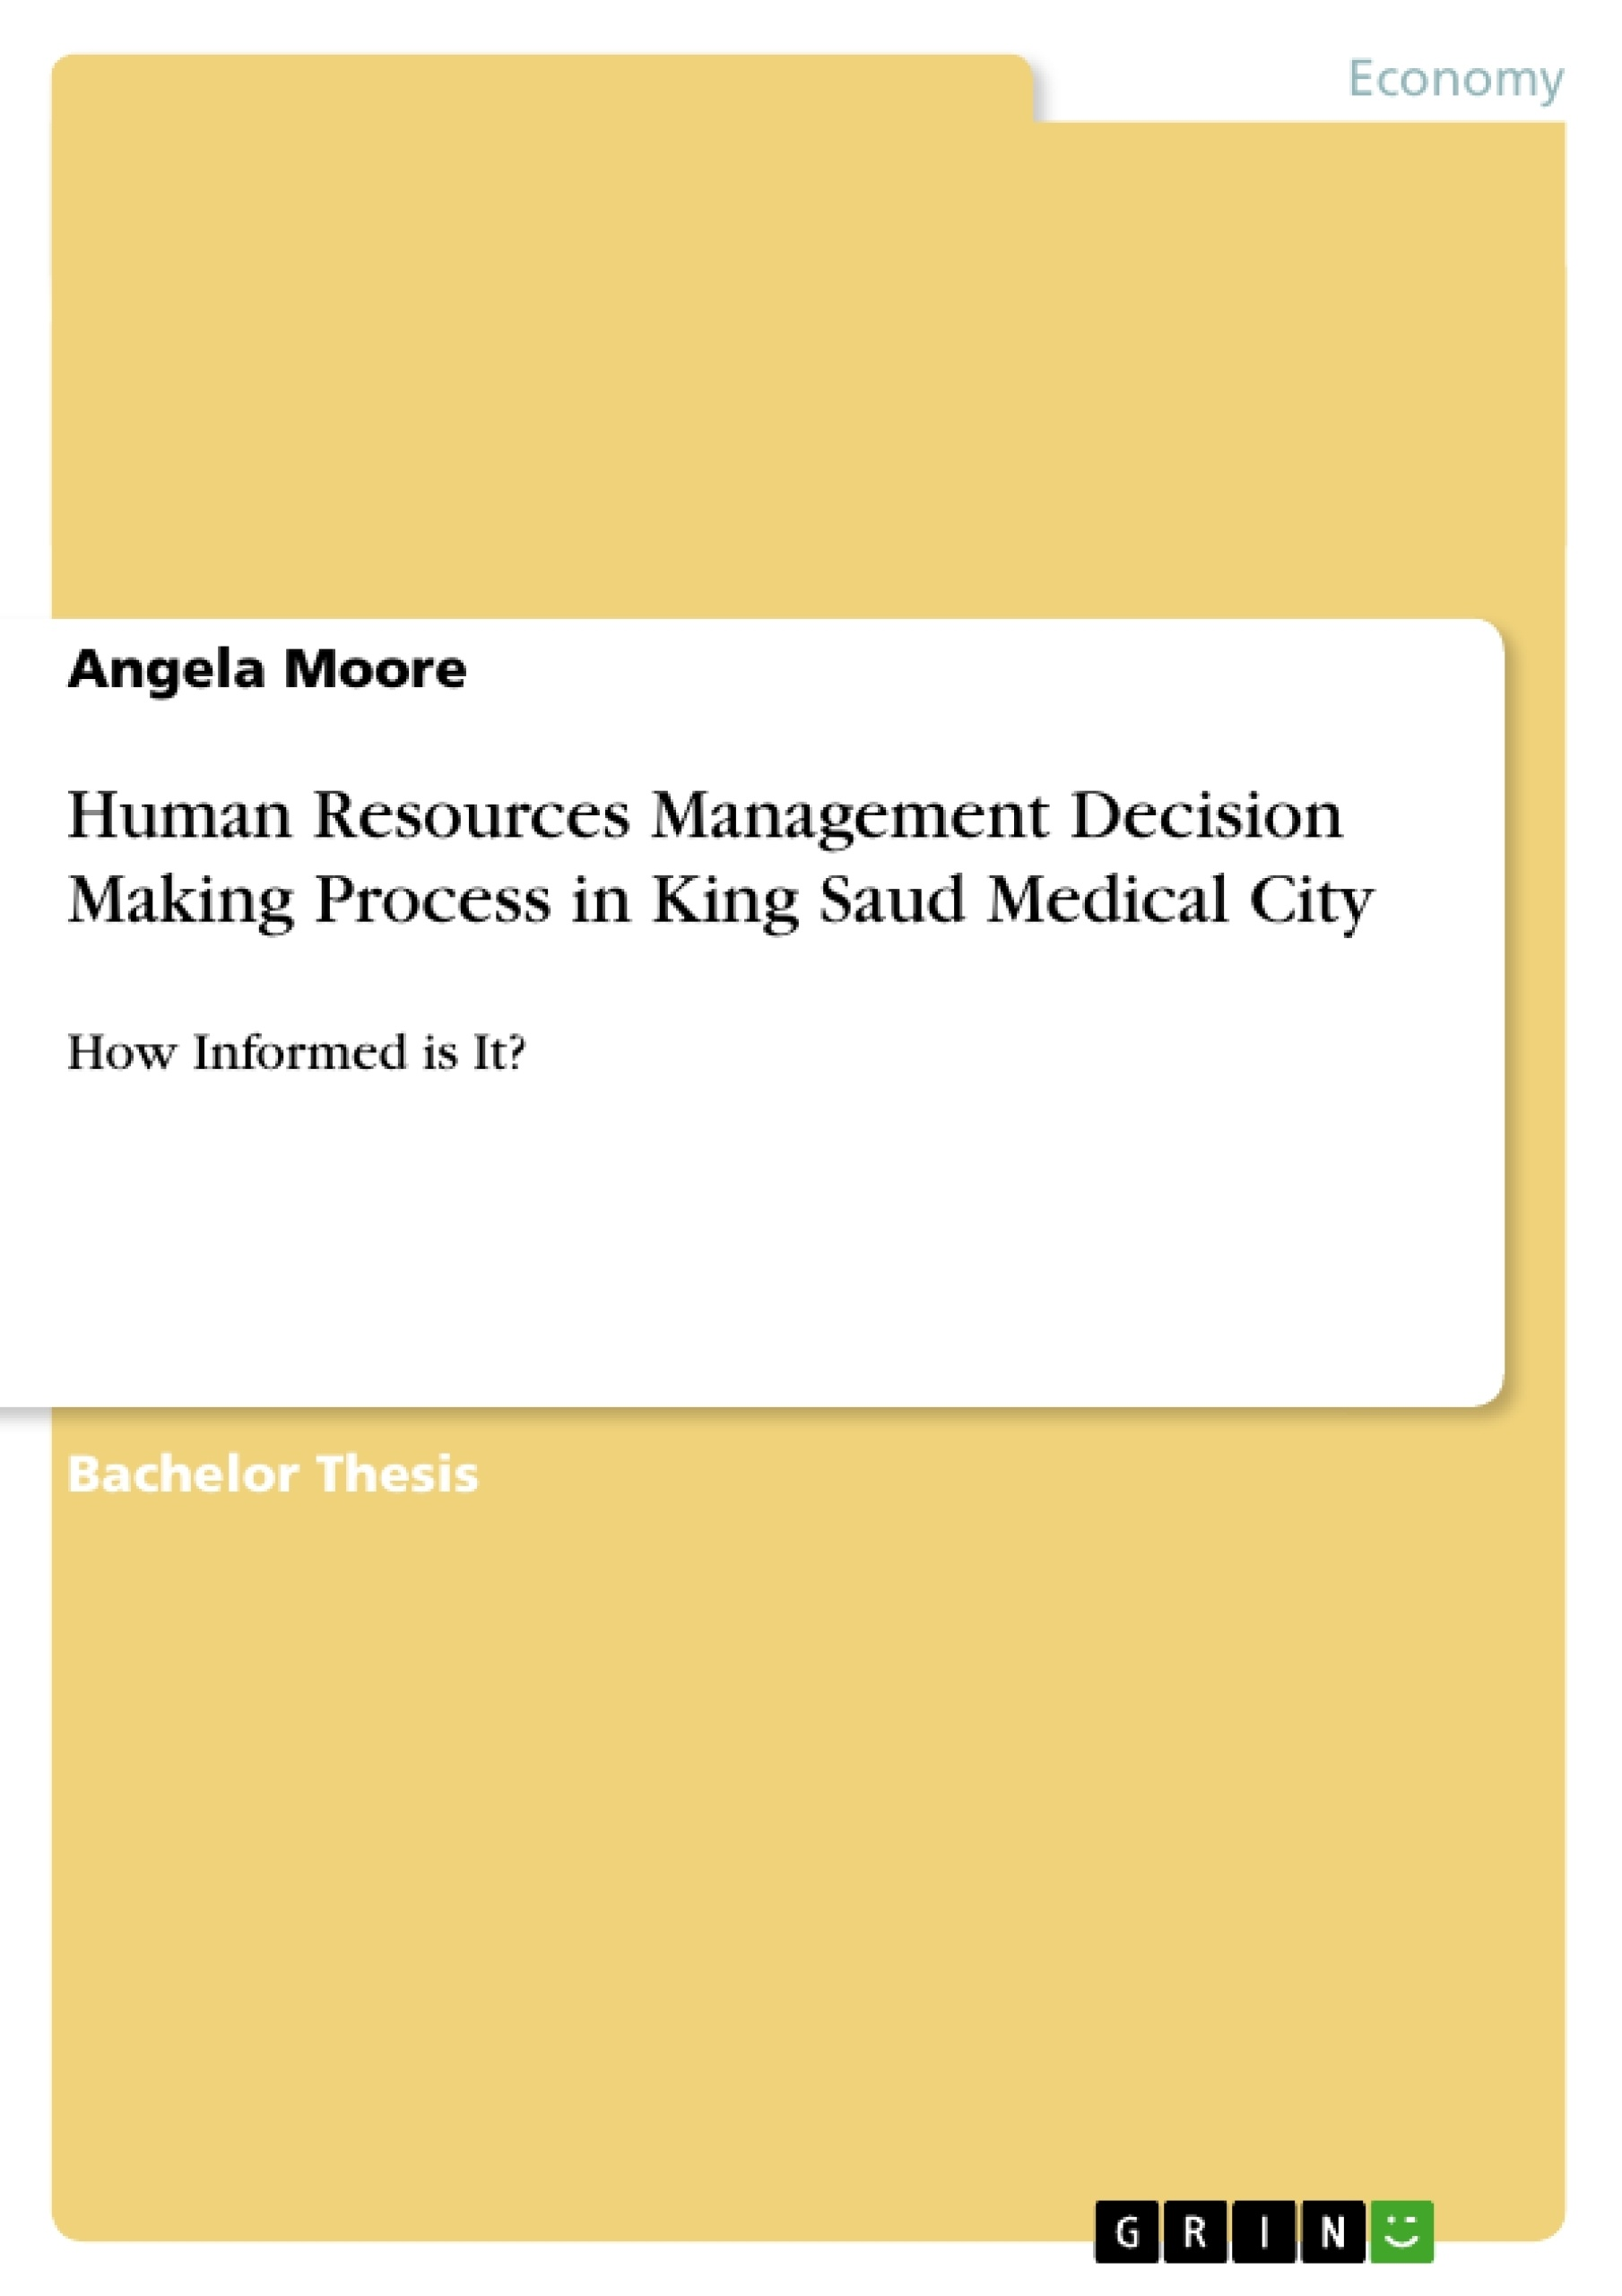 Title: Human Resources Management Decision Making Process in King Saud Medical City